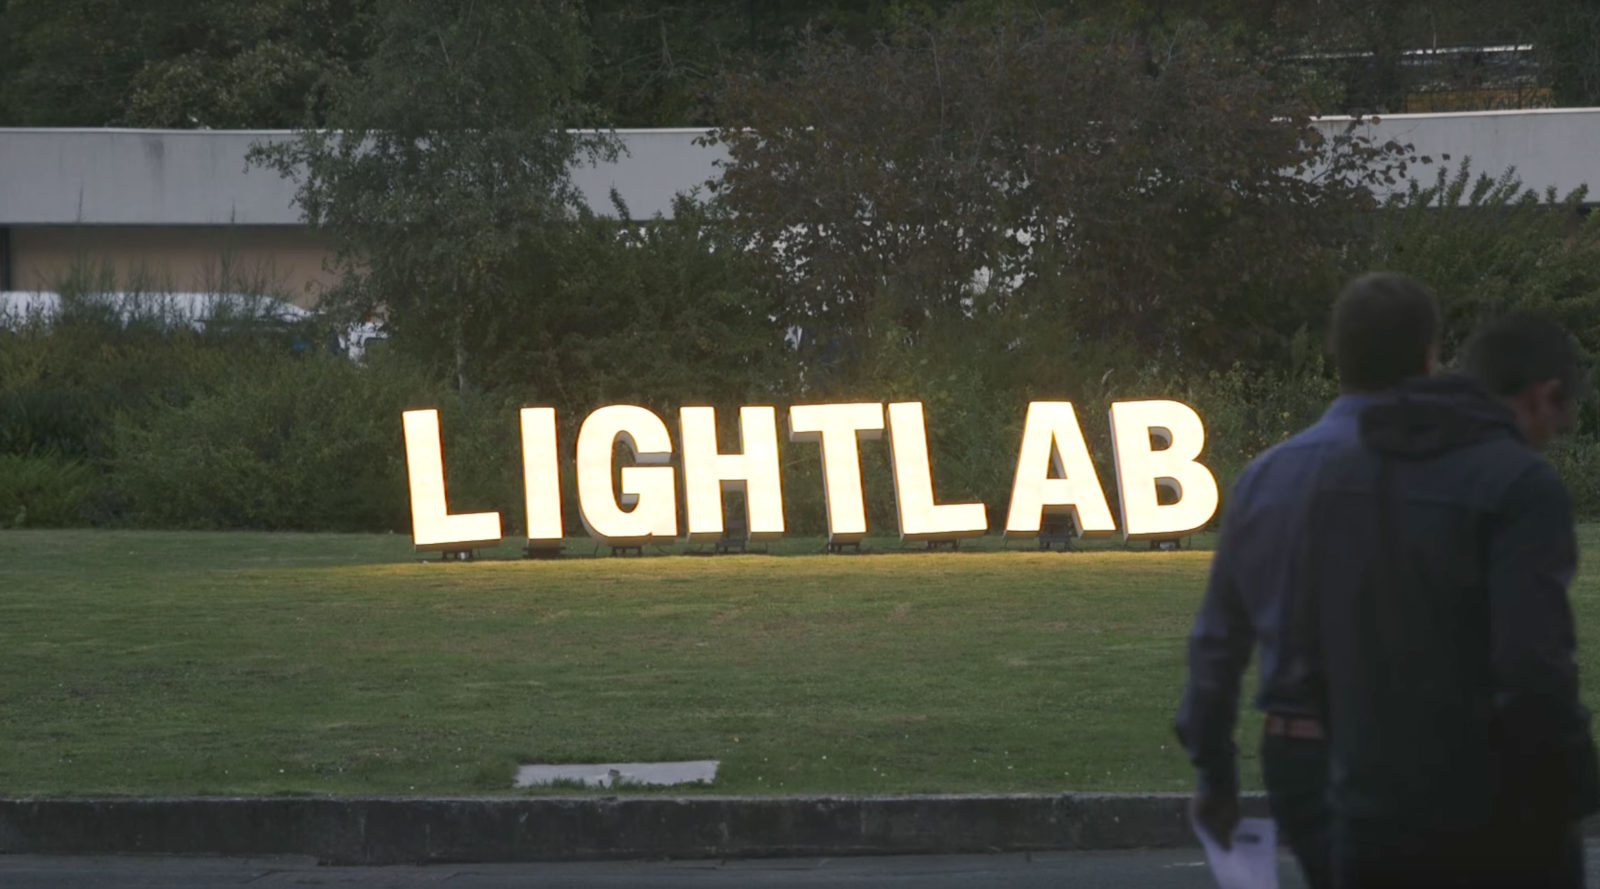 Lighlab Event Picture